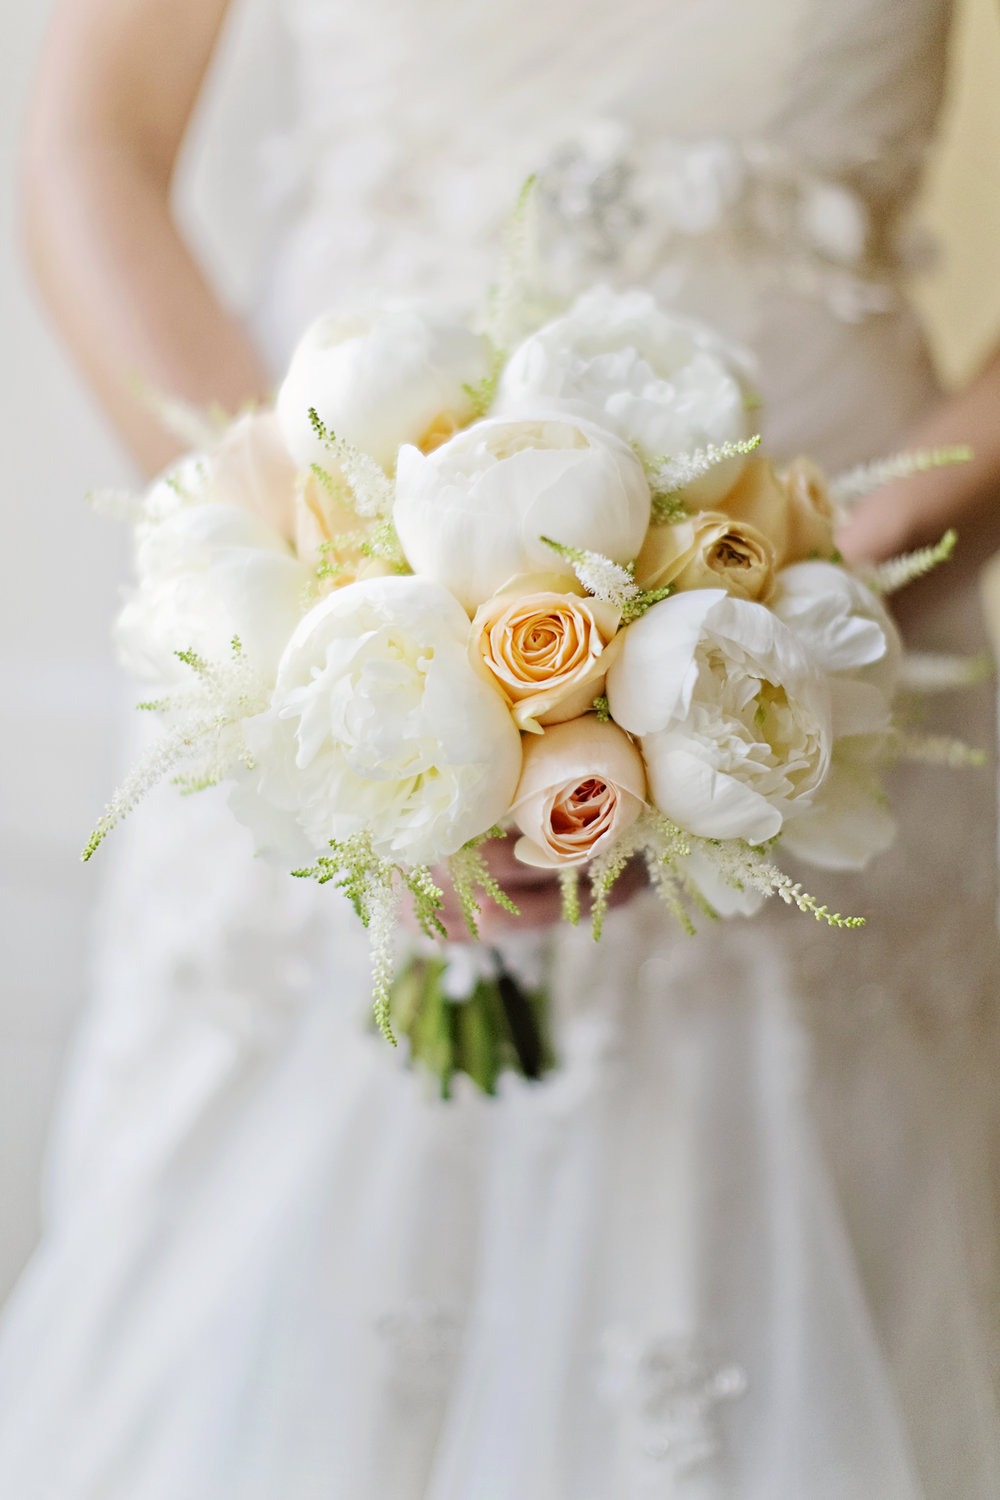 Bridal bouquet with peonies by award winning derbyshire florist, Tineke.